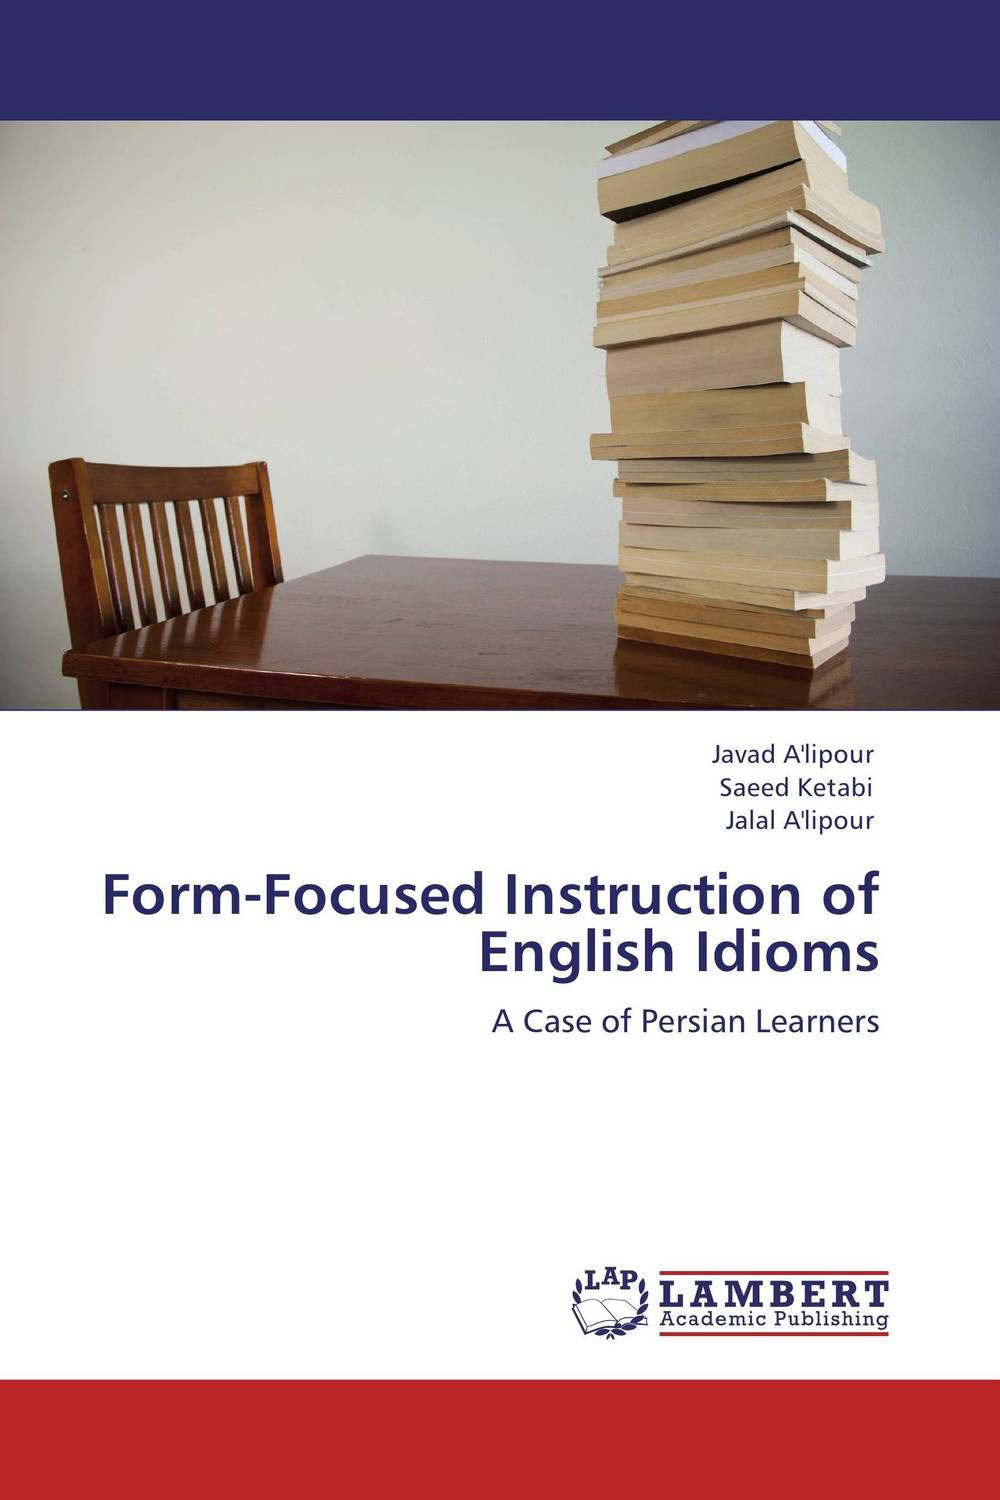 Form-Focused Instruction of English Idioms planned preemptive vs delayed reactive focus on form